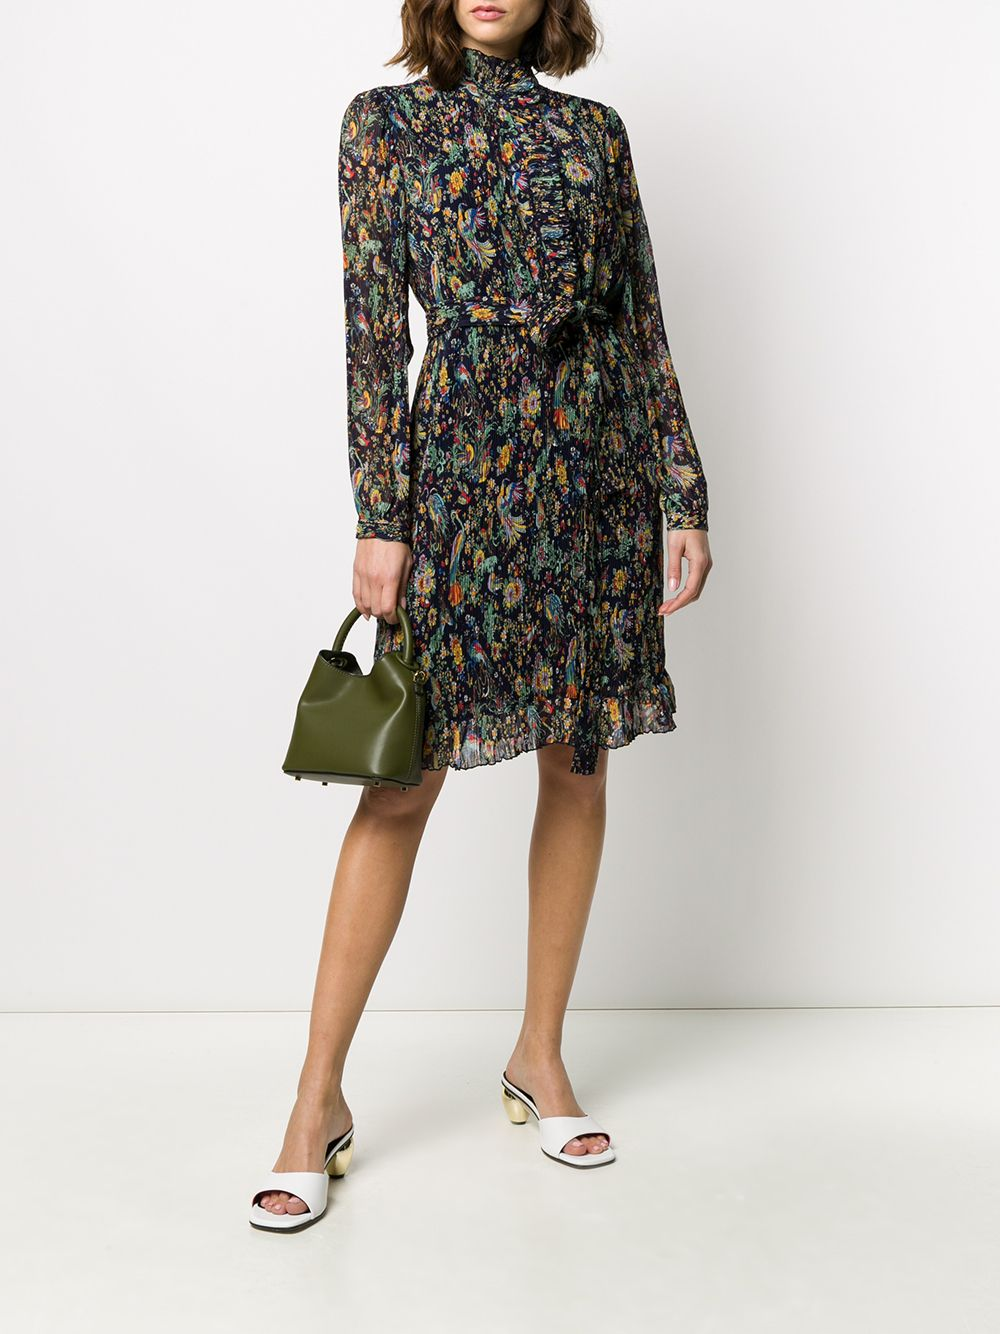 Picture of Tory Burch | Deneuve Dress